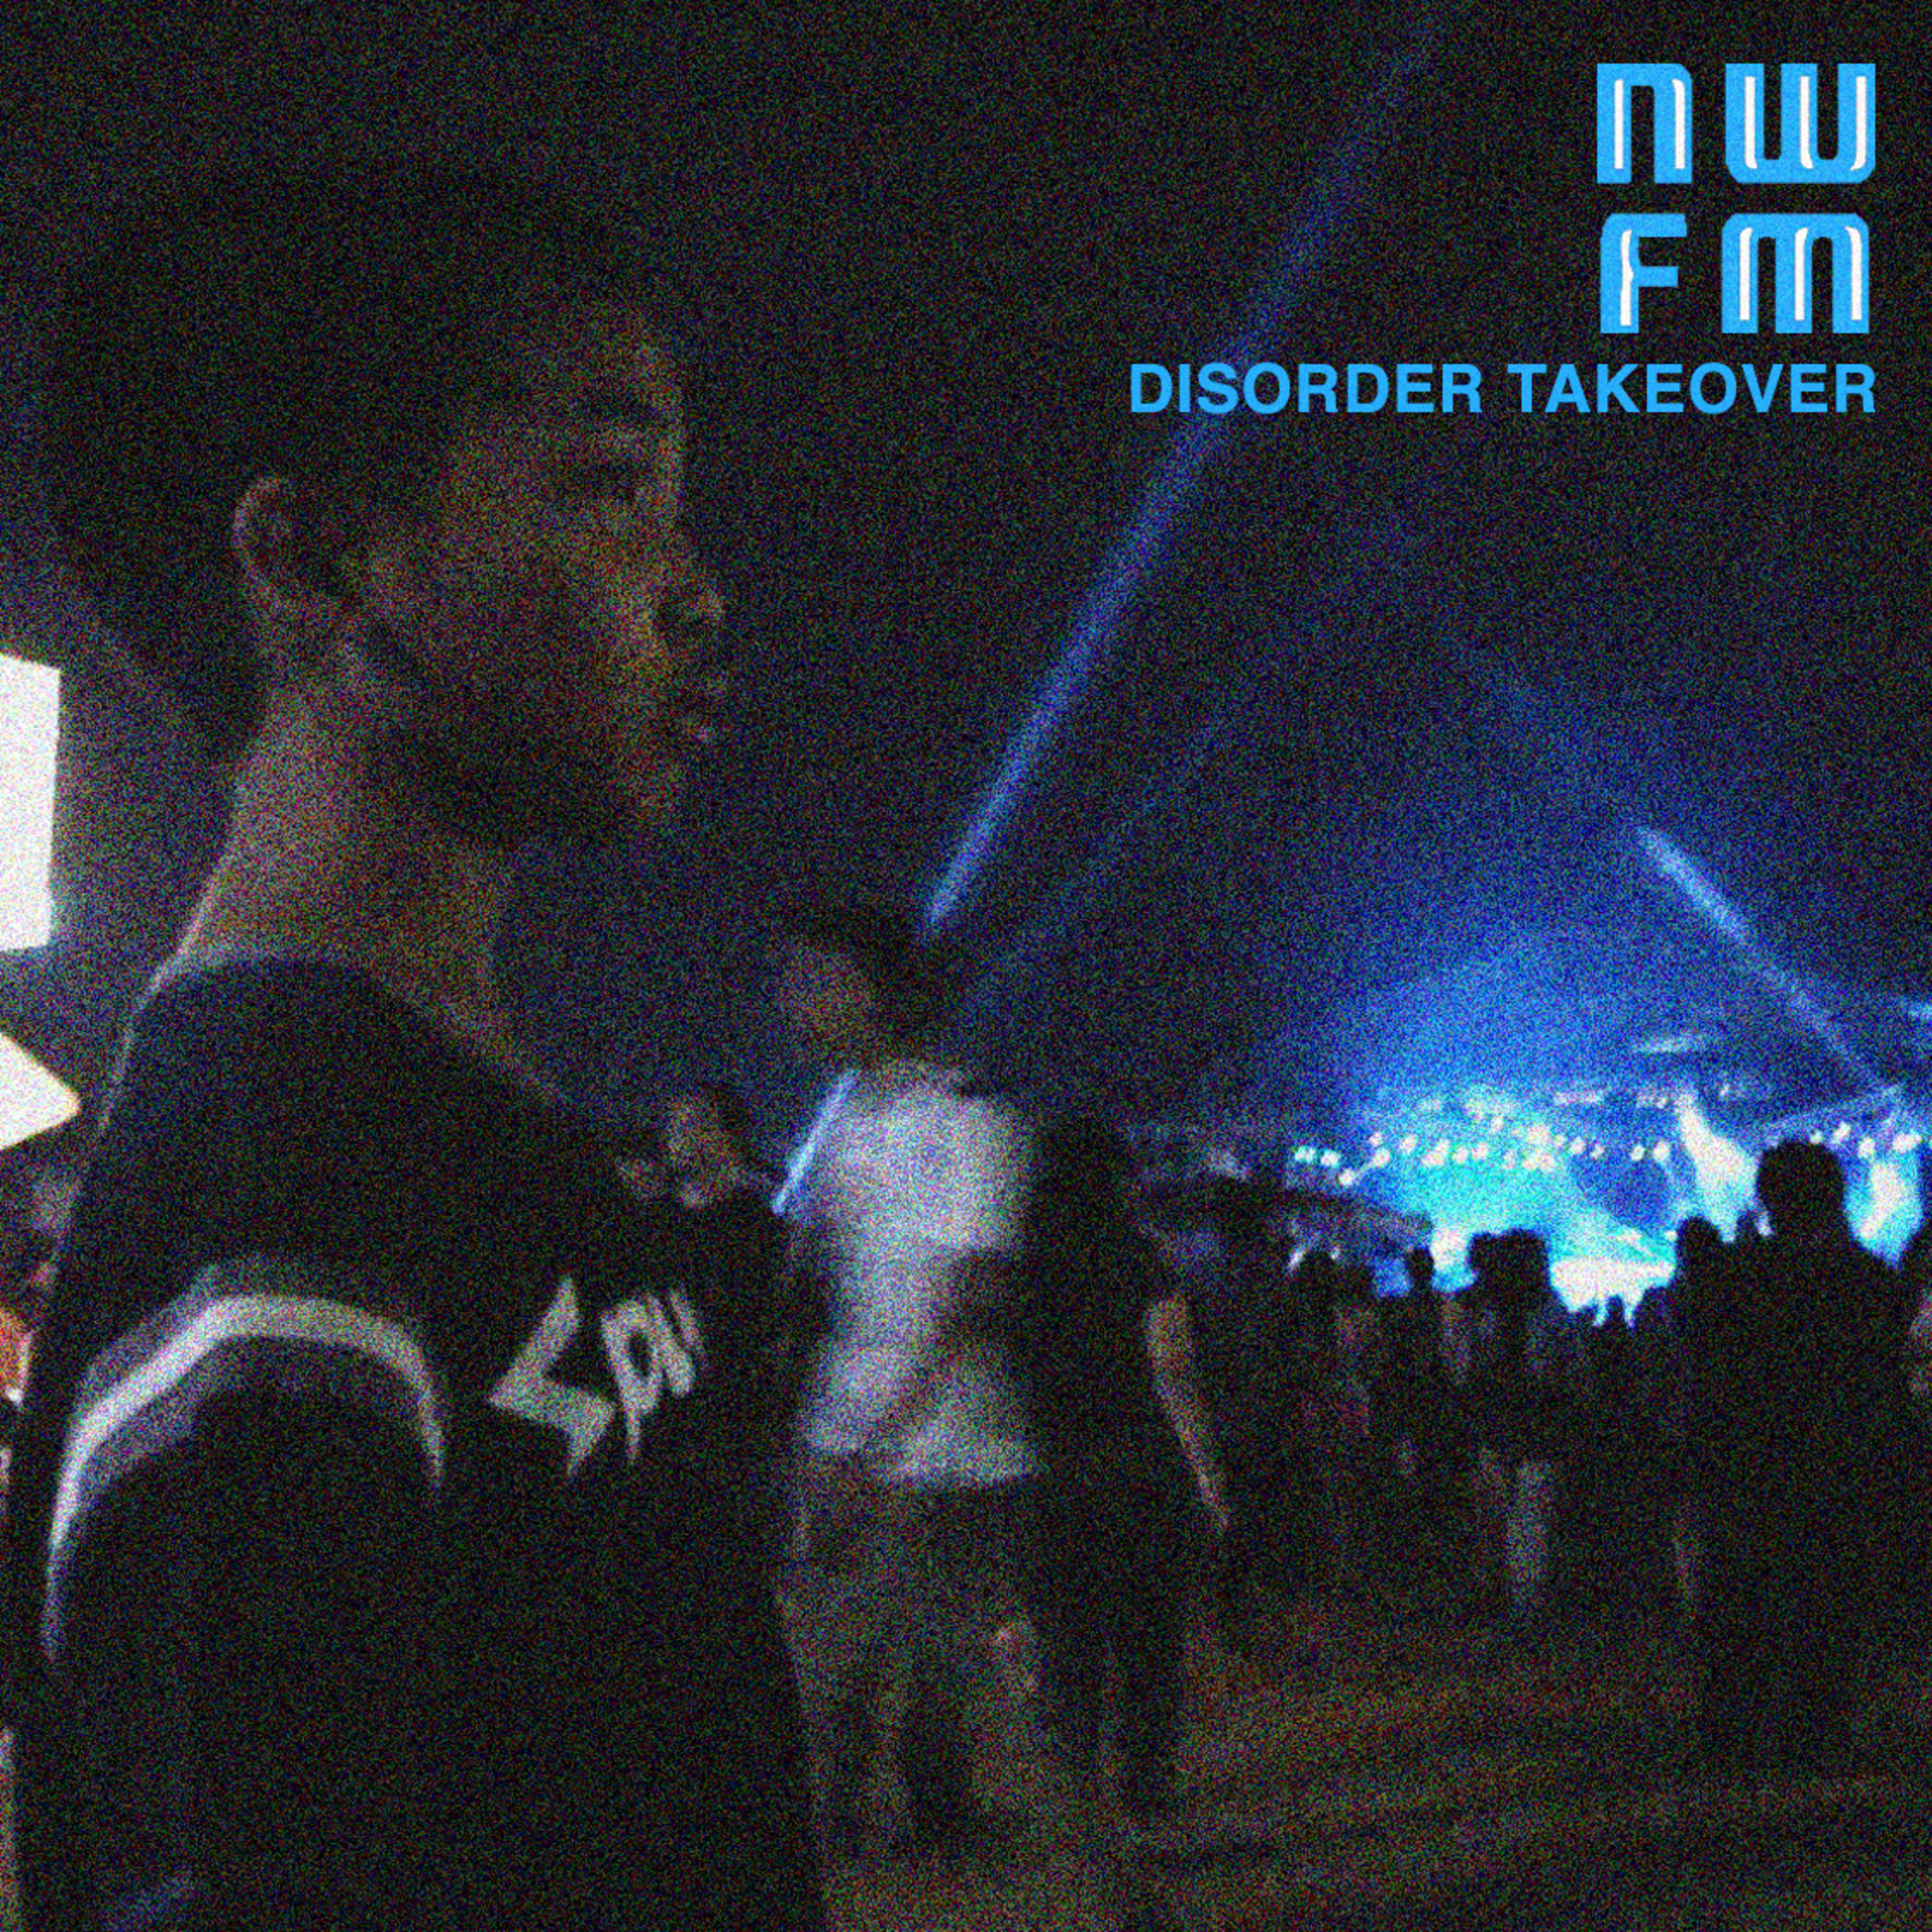 NWFM: Disorder Takeover